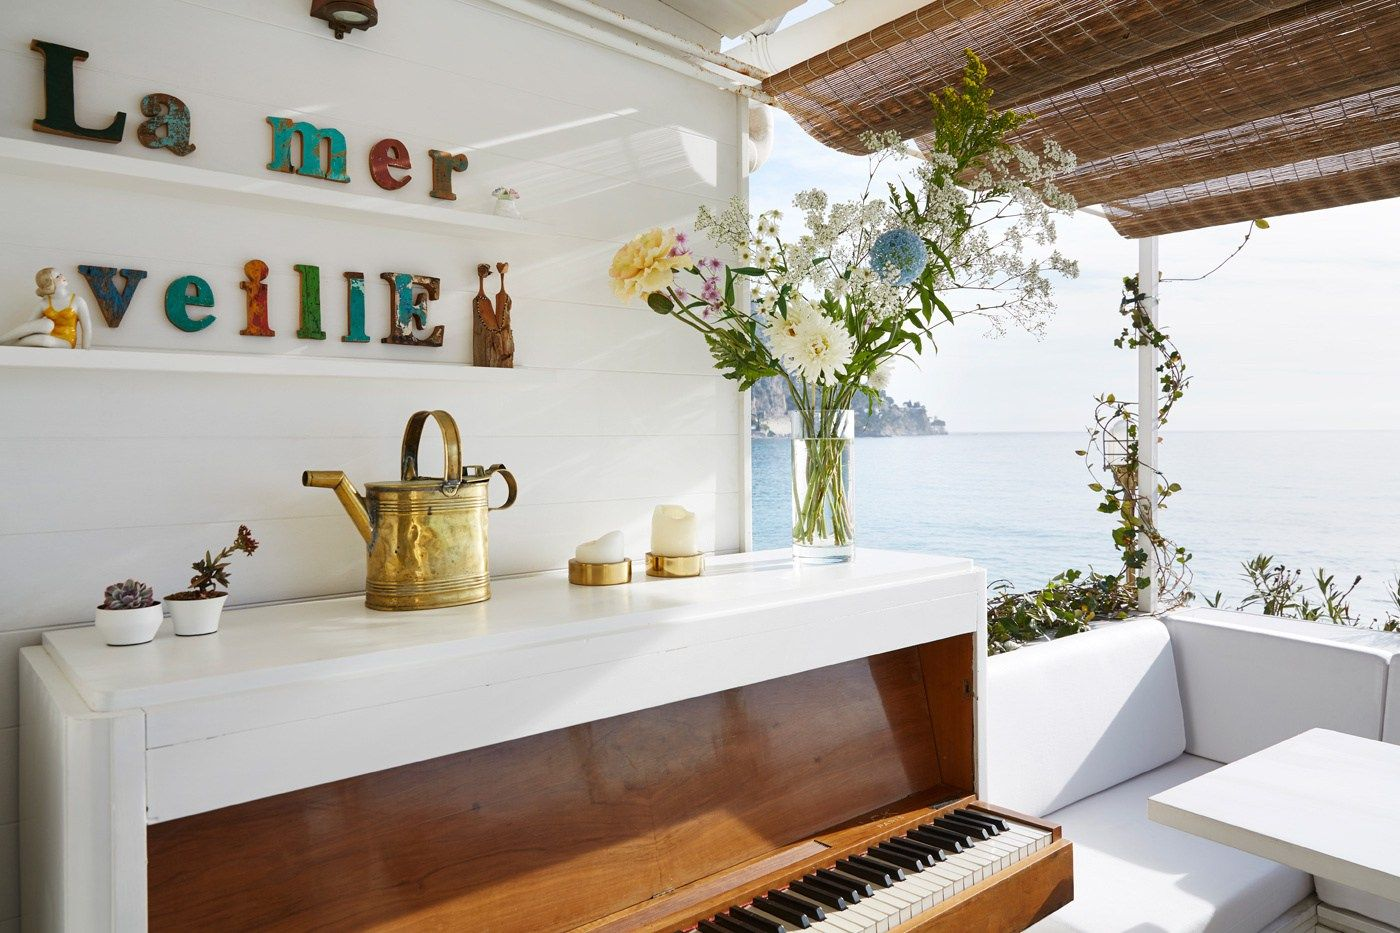 La mer veille... - PLANETE DECO a homes world